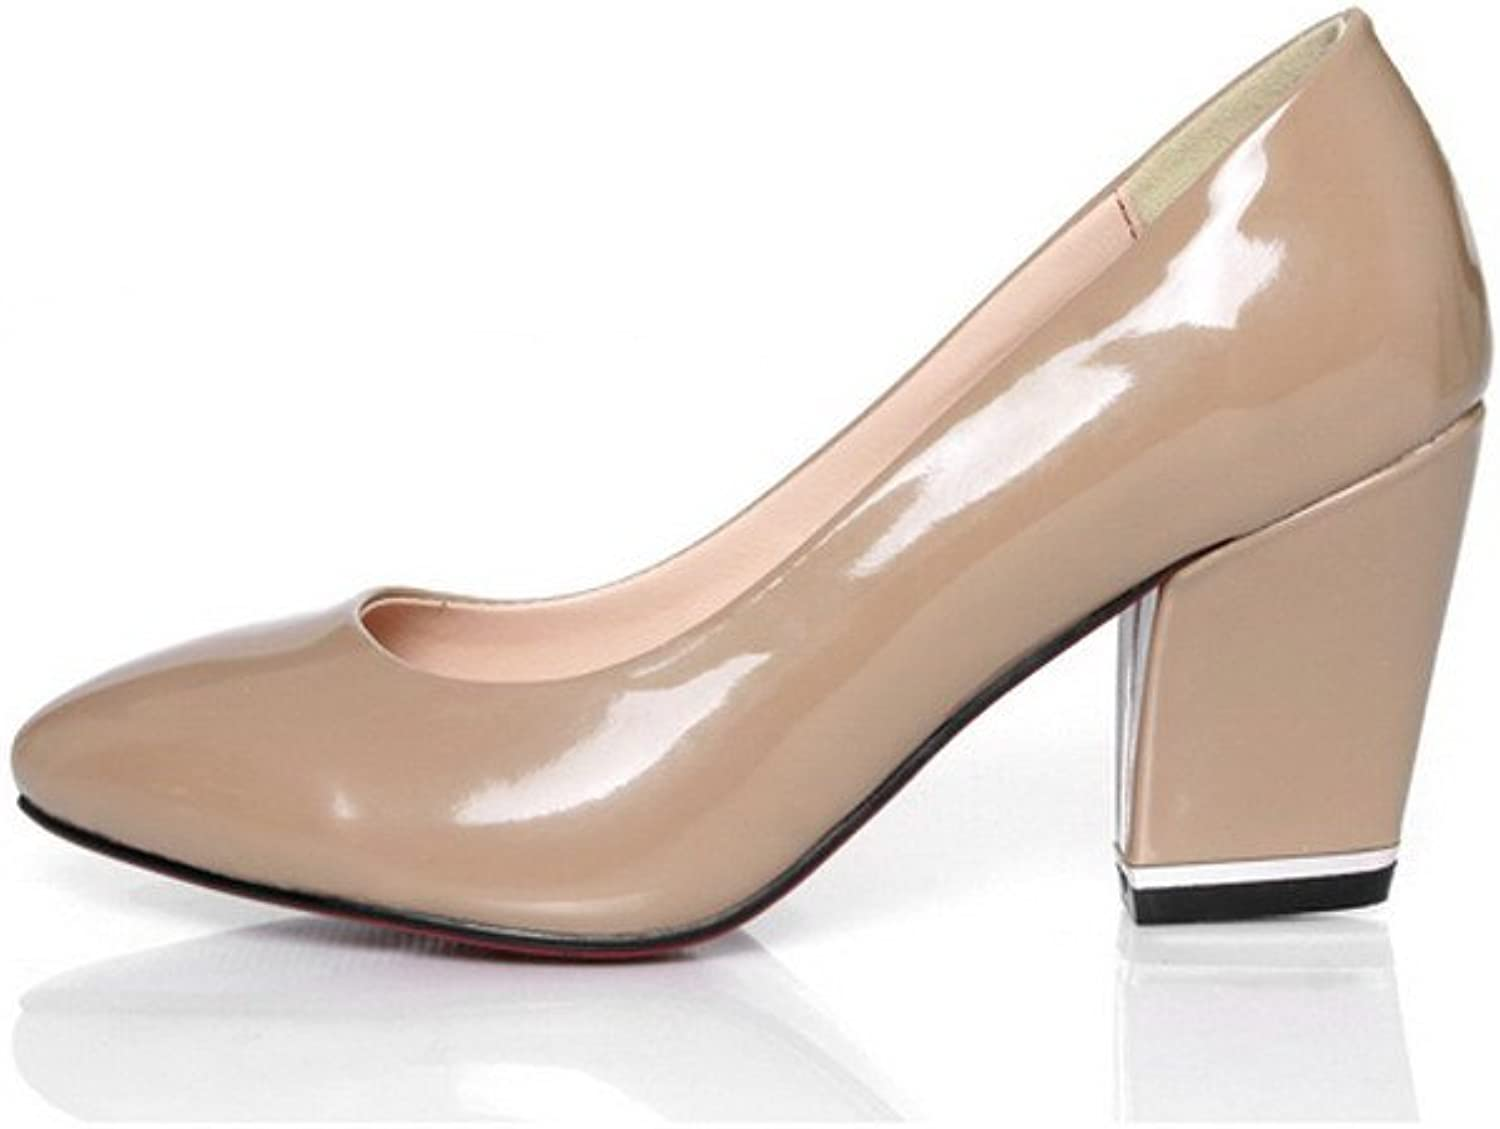 WeiPoot women's Soft Material Solid Closed Toe Pumps with Shallow Mouth and Chunky Heels